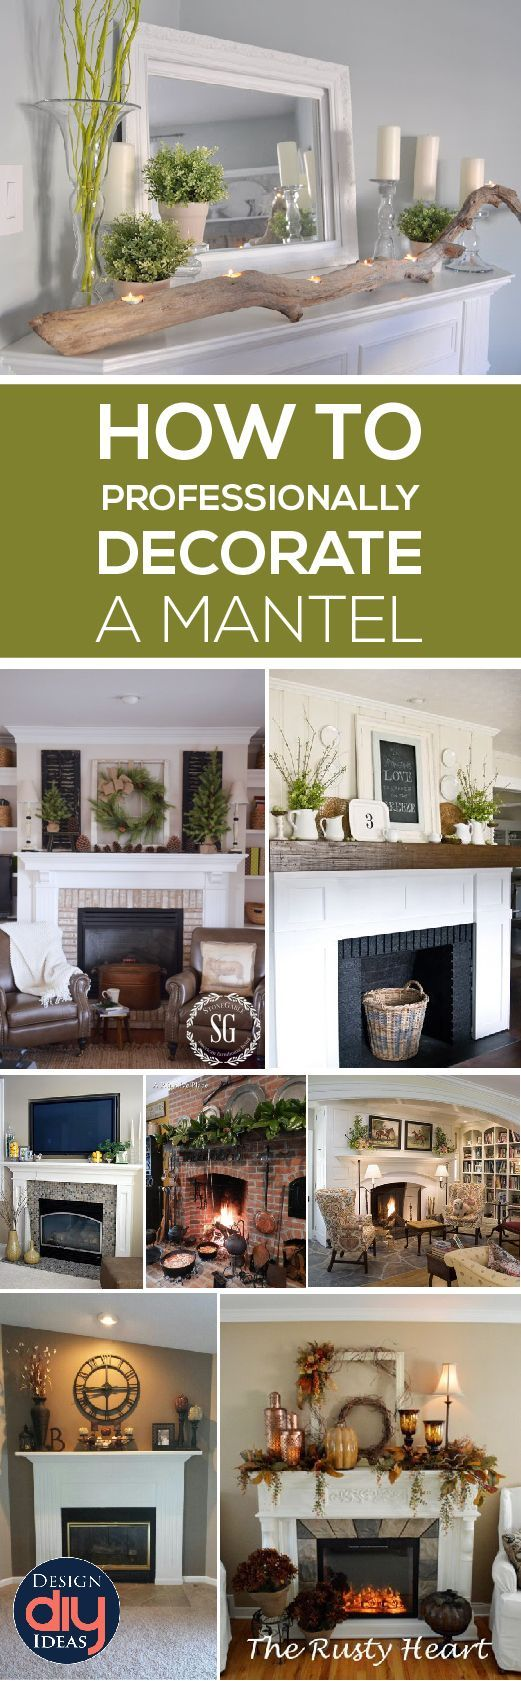 Best 20 Mantels decor ideas on Pinterest Mantle decorating